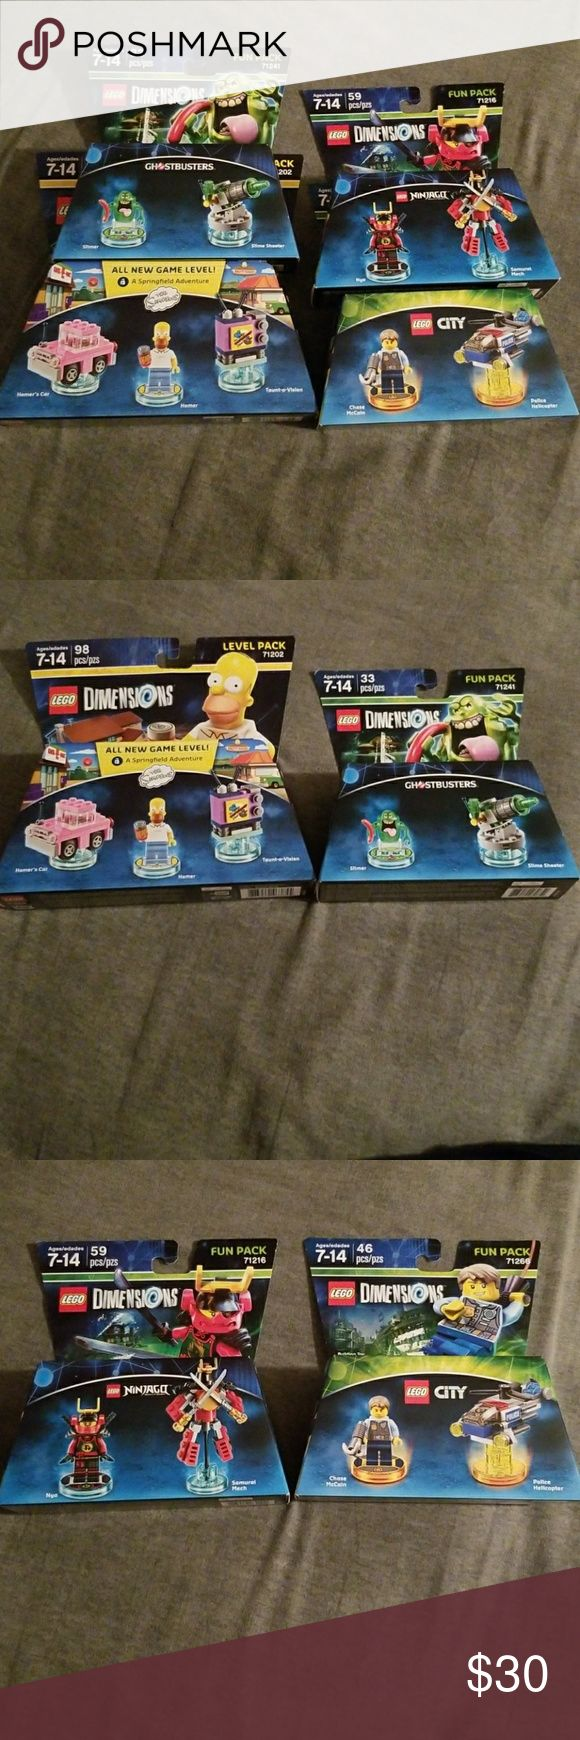 Lego Dimensions Simpsons, Ghostbuster + 2 more For sale is 4 packs of Lego Dimensions. The Simpsons Homer, Homer's car and Taunt-o-vision. The Ghostbusters Slimer and Slime shooter. Lego City Chase McCain and Police Helicopter. And lastly, Lego Ninjago Nya and Samurai Mech. All brand new sealed in package. Lego Accessories